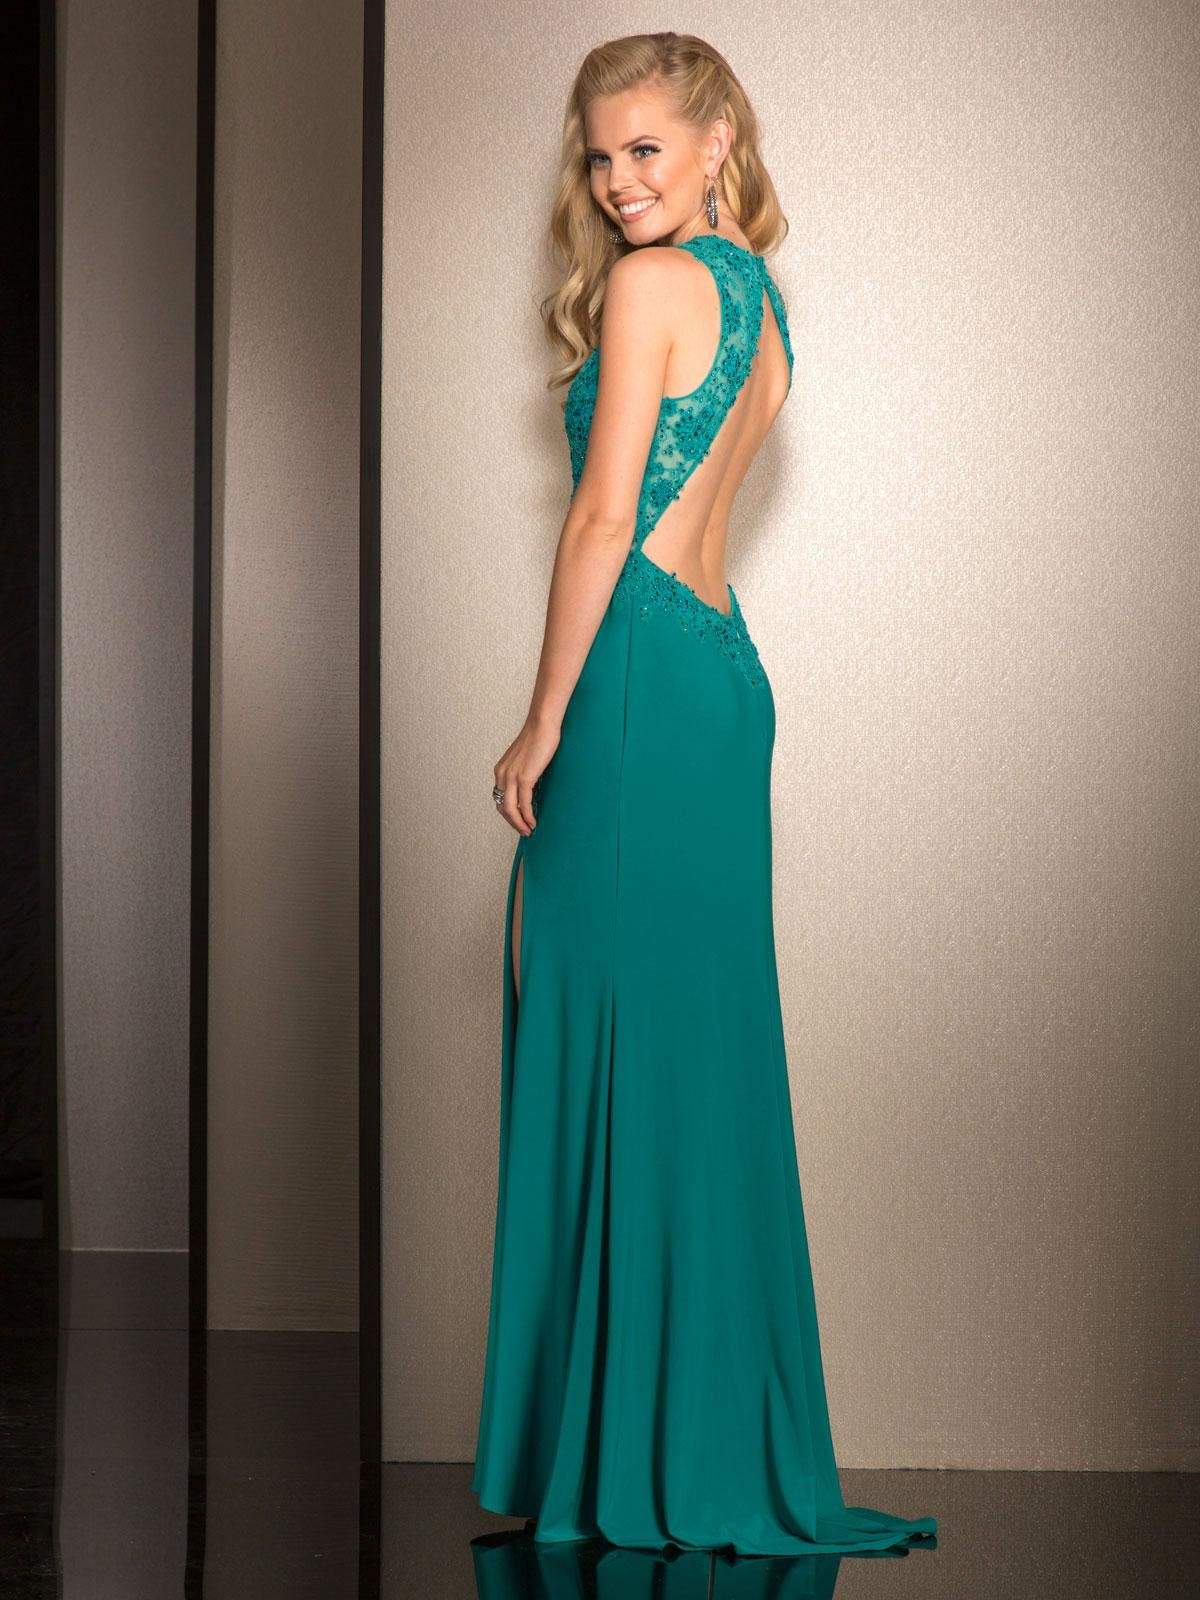 Pin by My Info on b-day dress   Pinterest   Prom, Spring and Detail